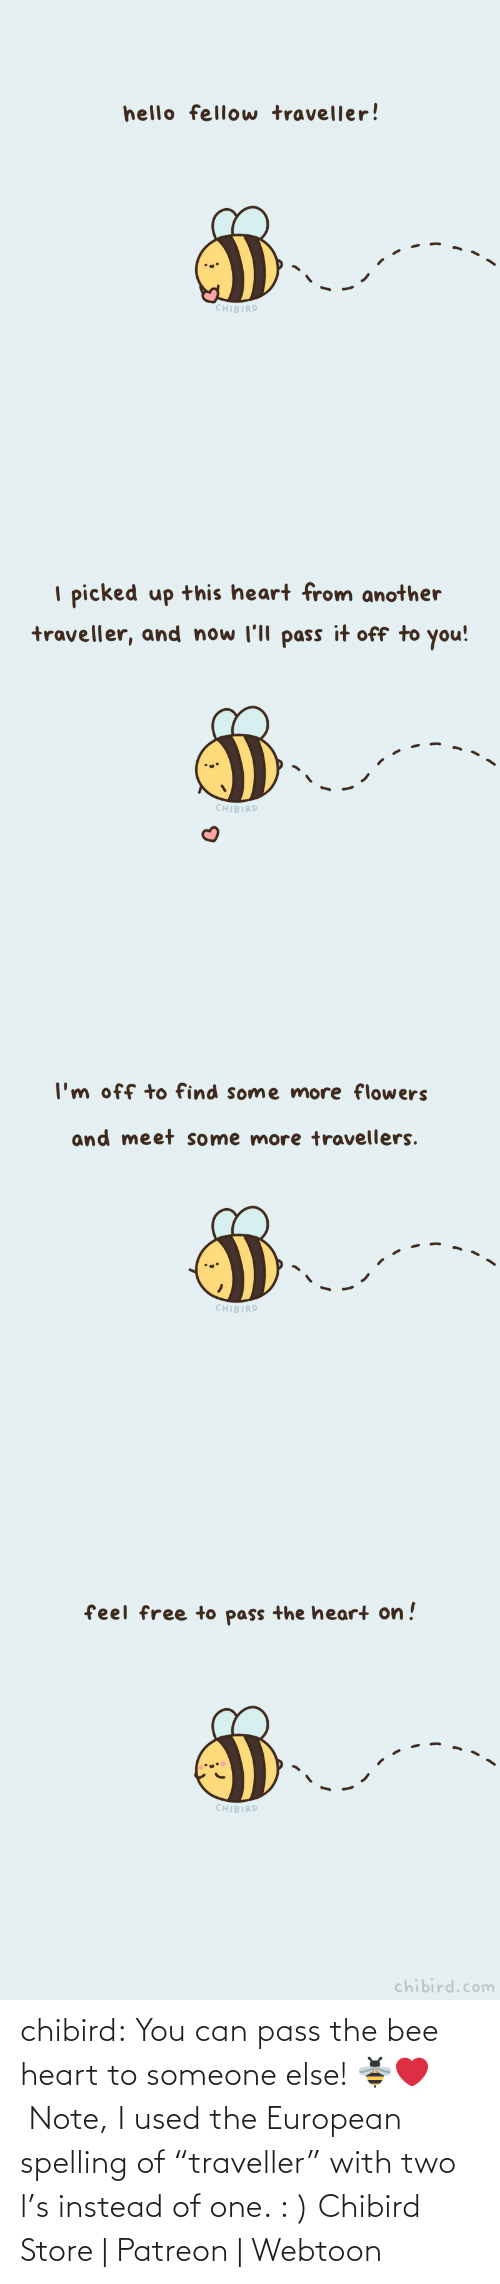 "challenge: chibird:  You can pass the bee heart to someone else! 🐝❤️️ Note, I used the European spelling of ""traveller"" with two l's instead of one. : )  Chibird Store 